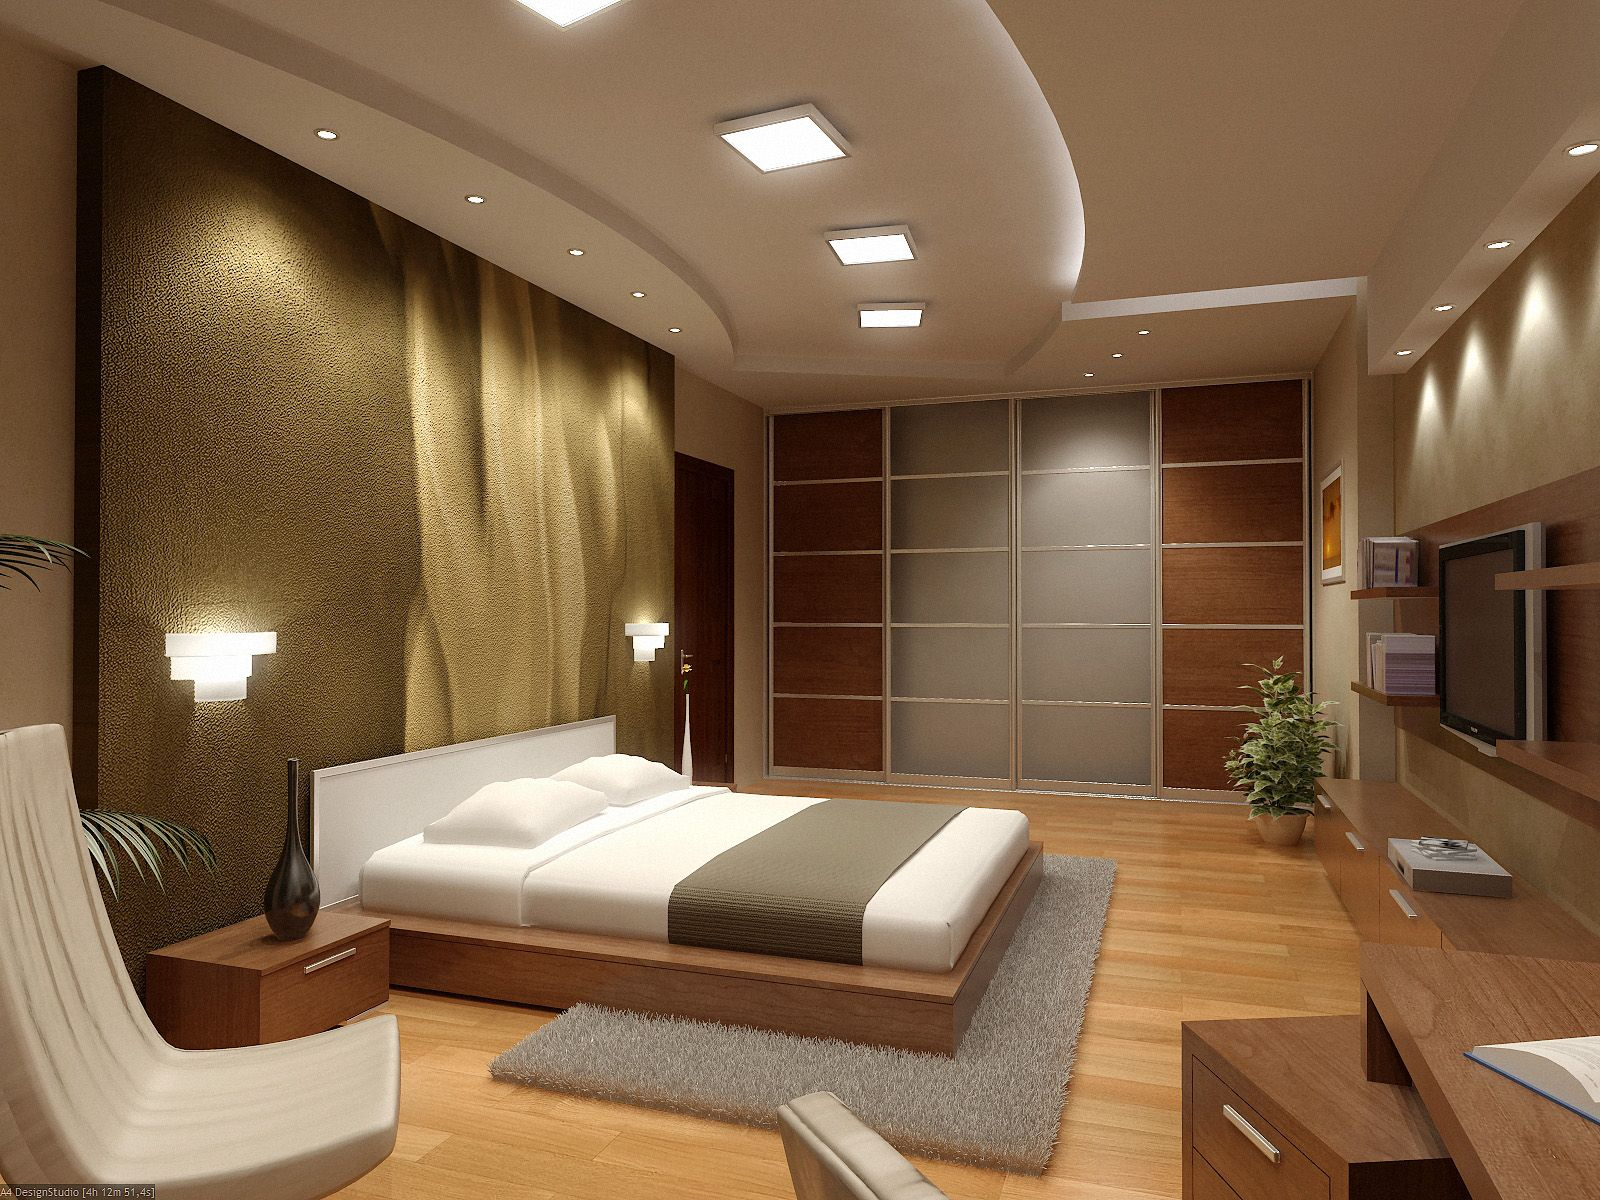 Impressive Modern Bedroom Interior Design Ideas 1600 x 1200 · 367 kB · jpeg